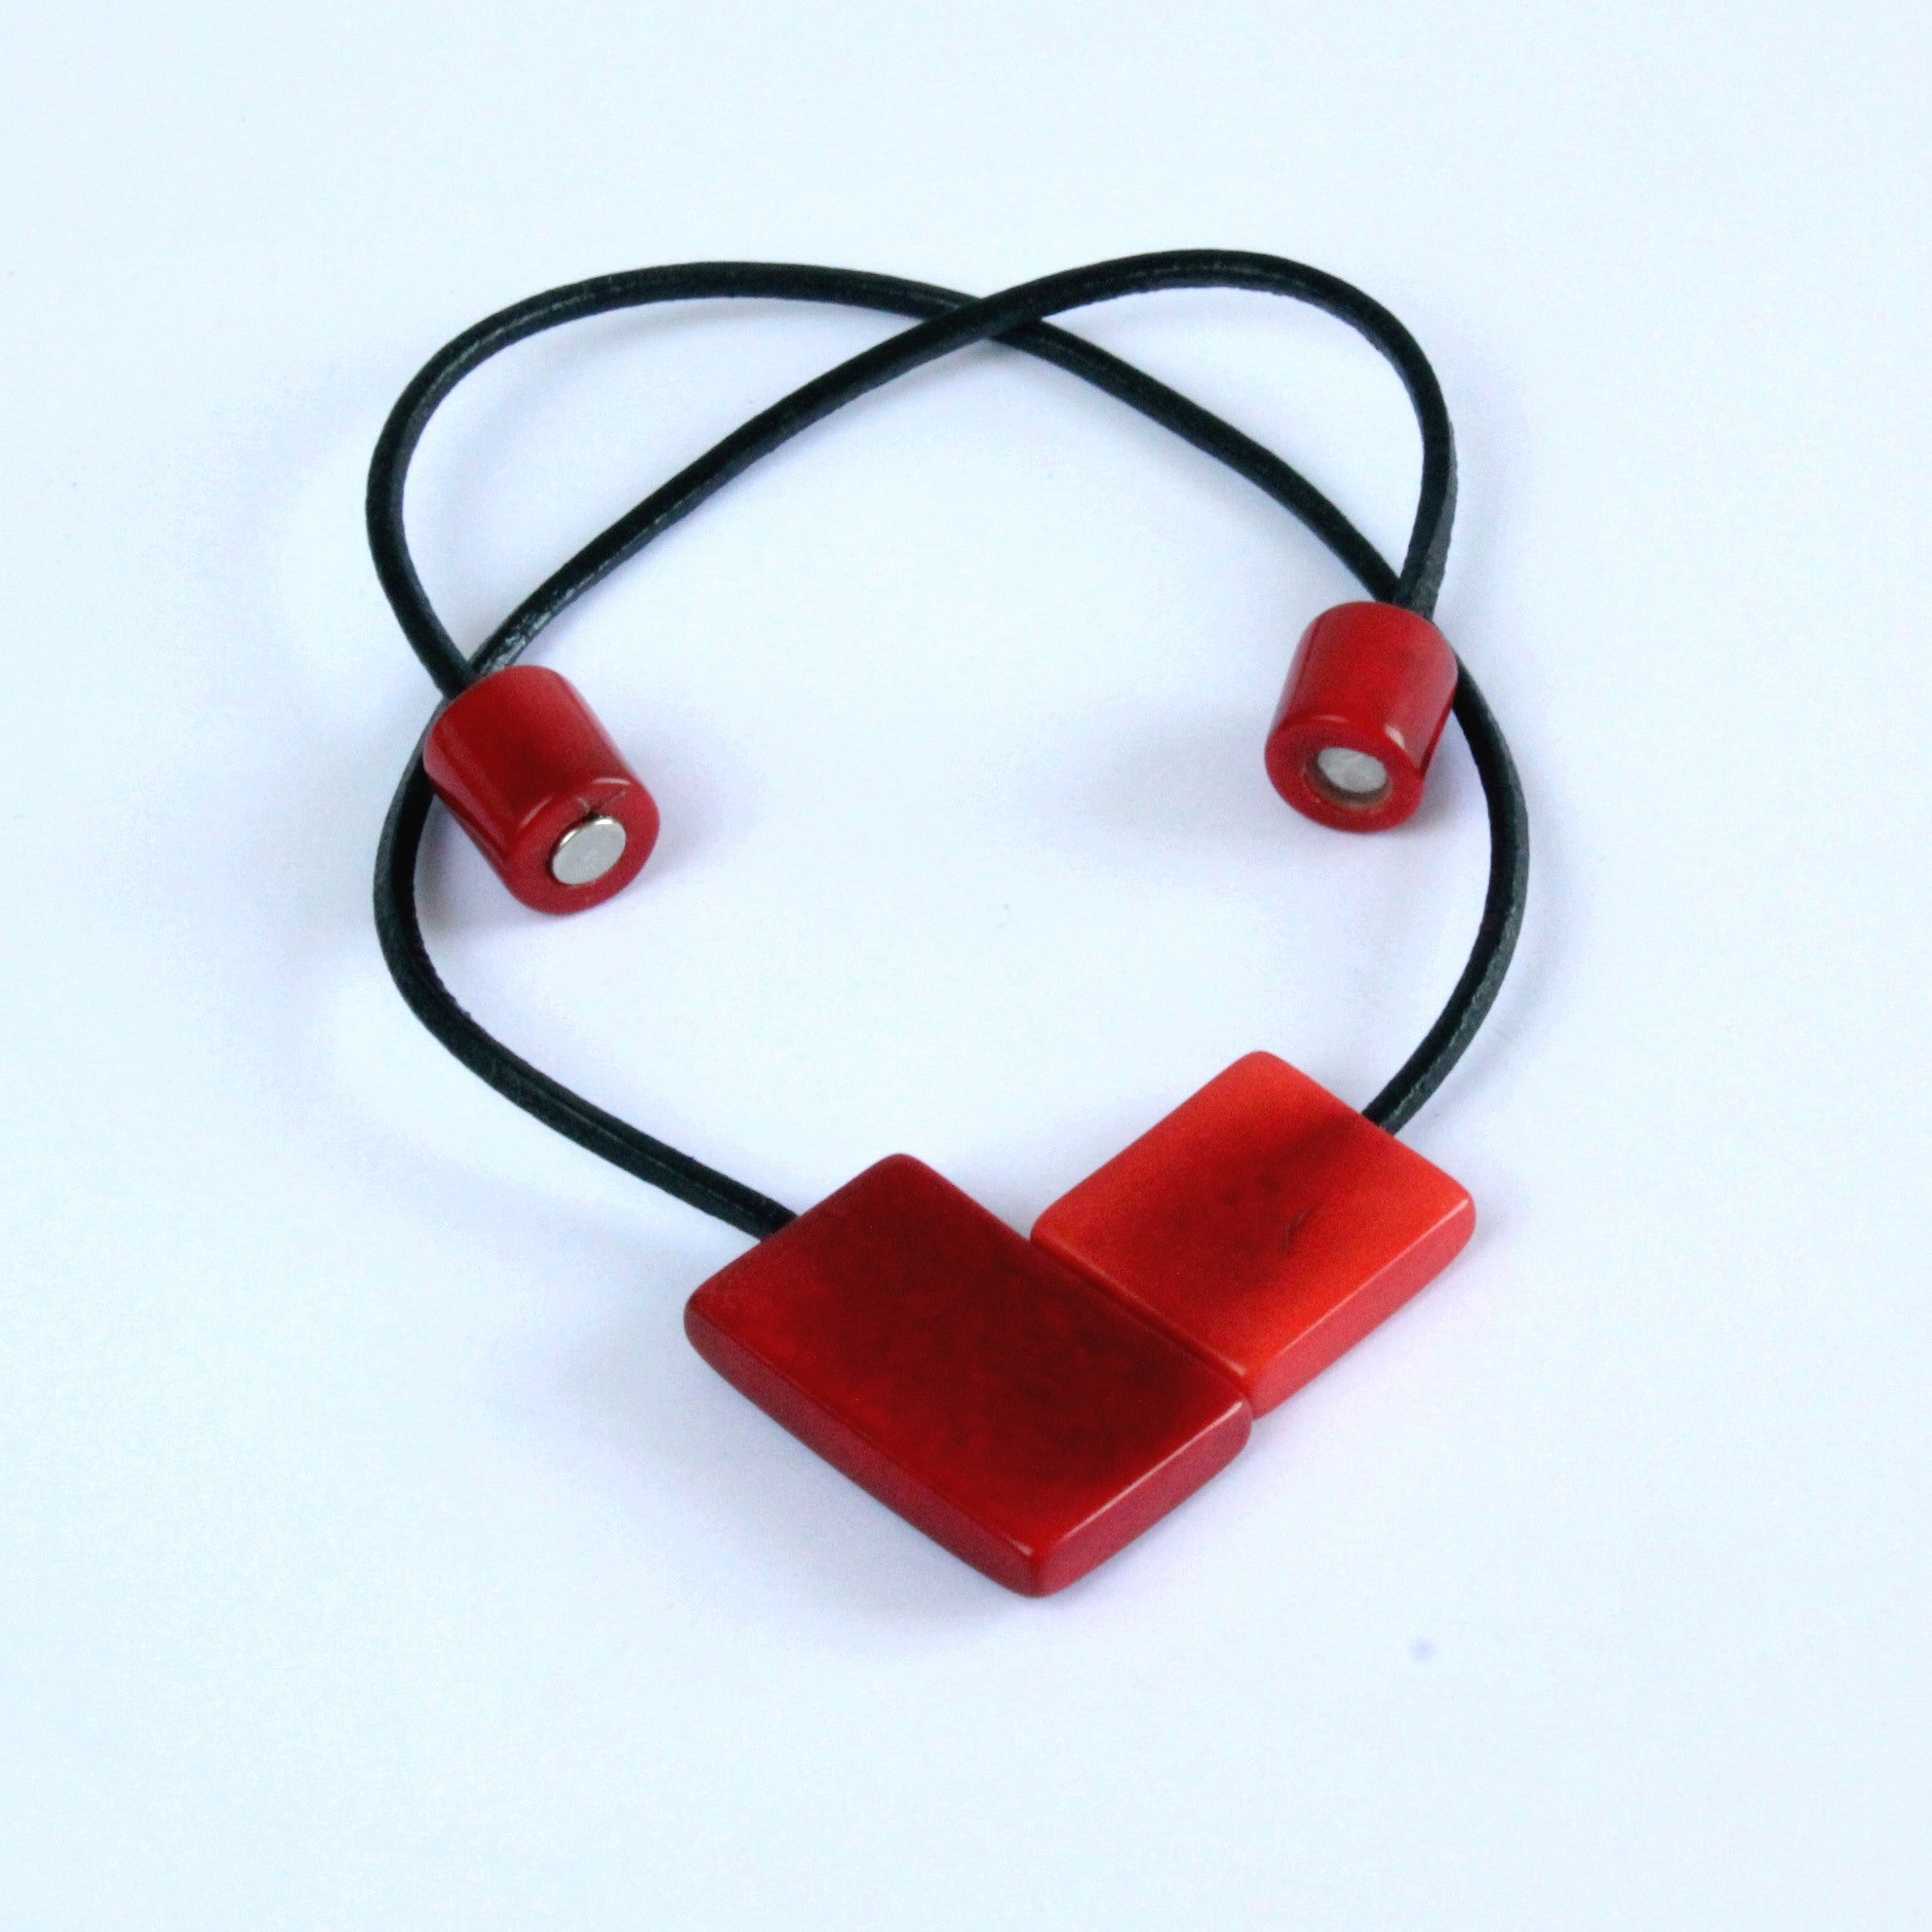 Handmade necklace, sustainable, tagua nut, magnetic lock, red